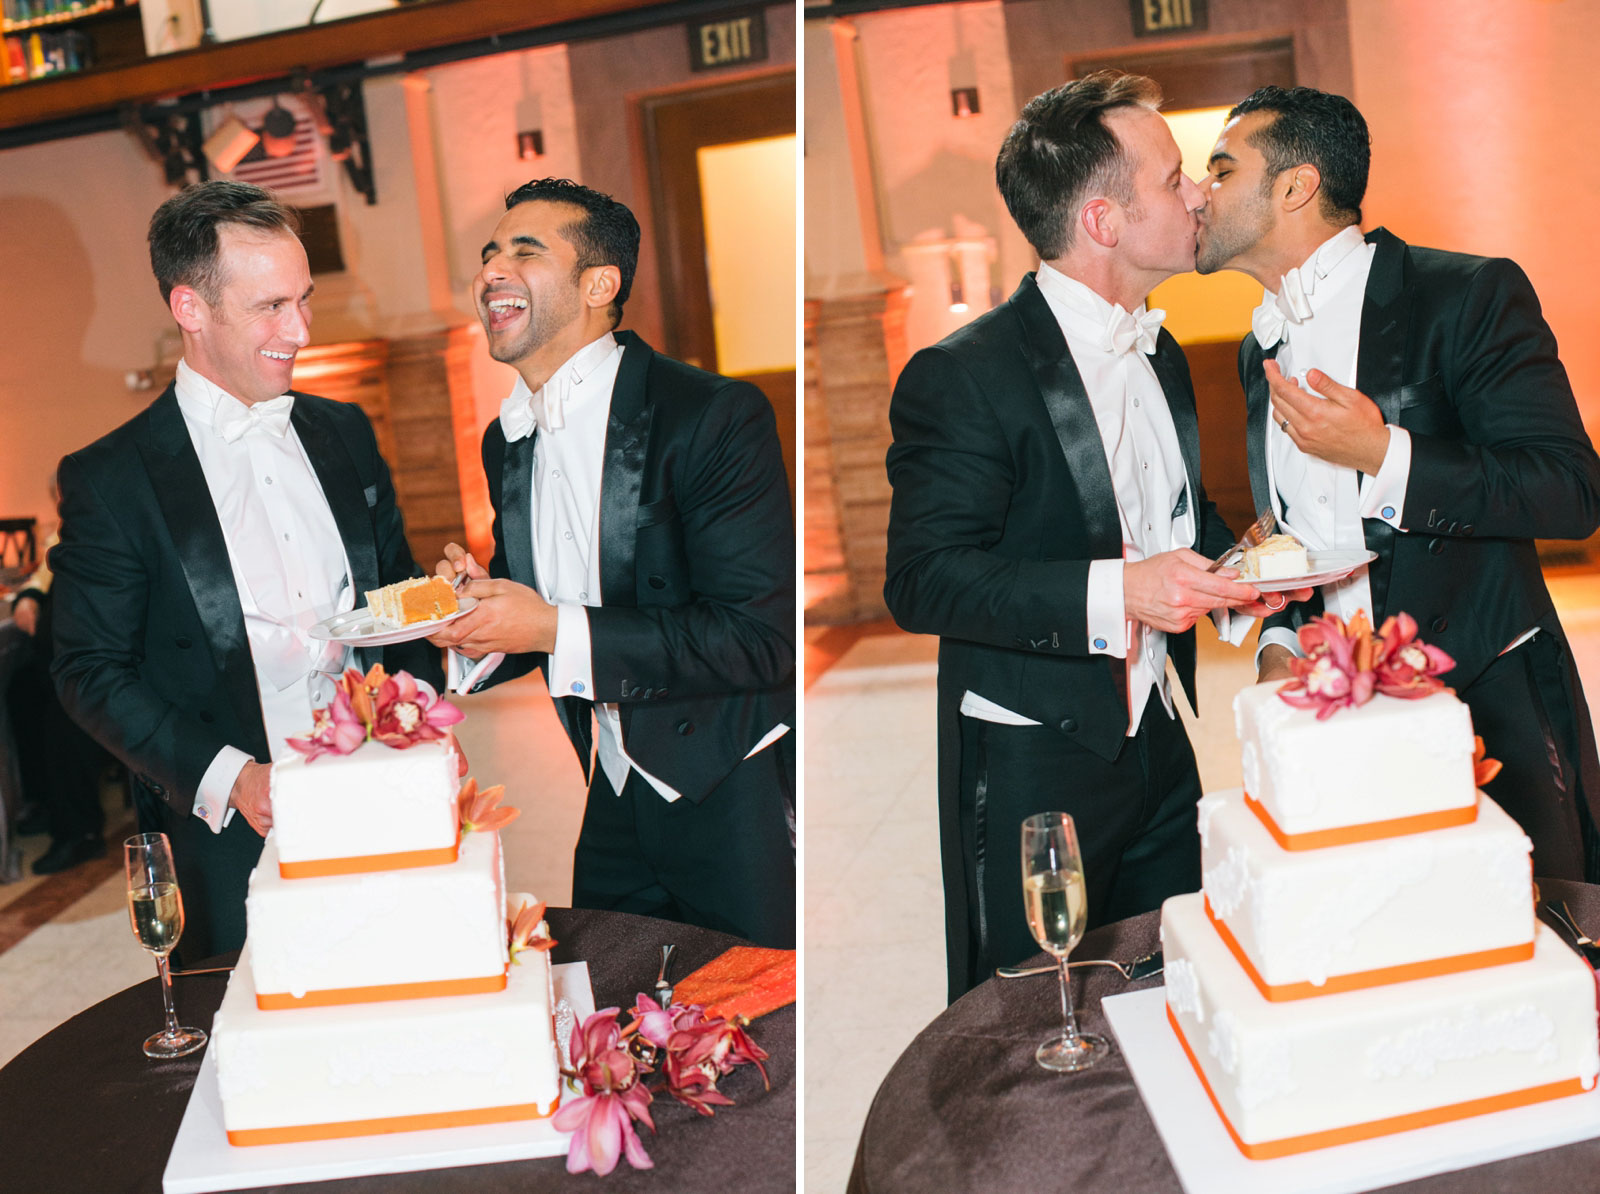 Grooms laughing while cutting cake and kissing in front of cake during same-sex wedding reception.